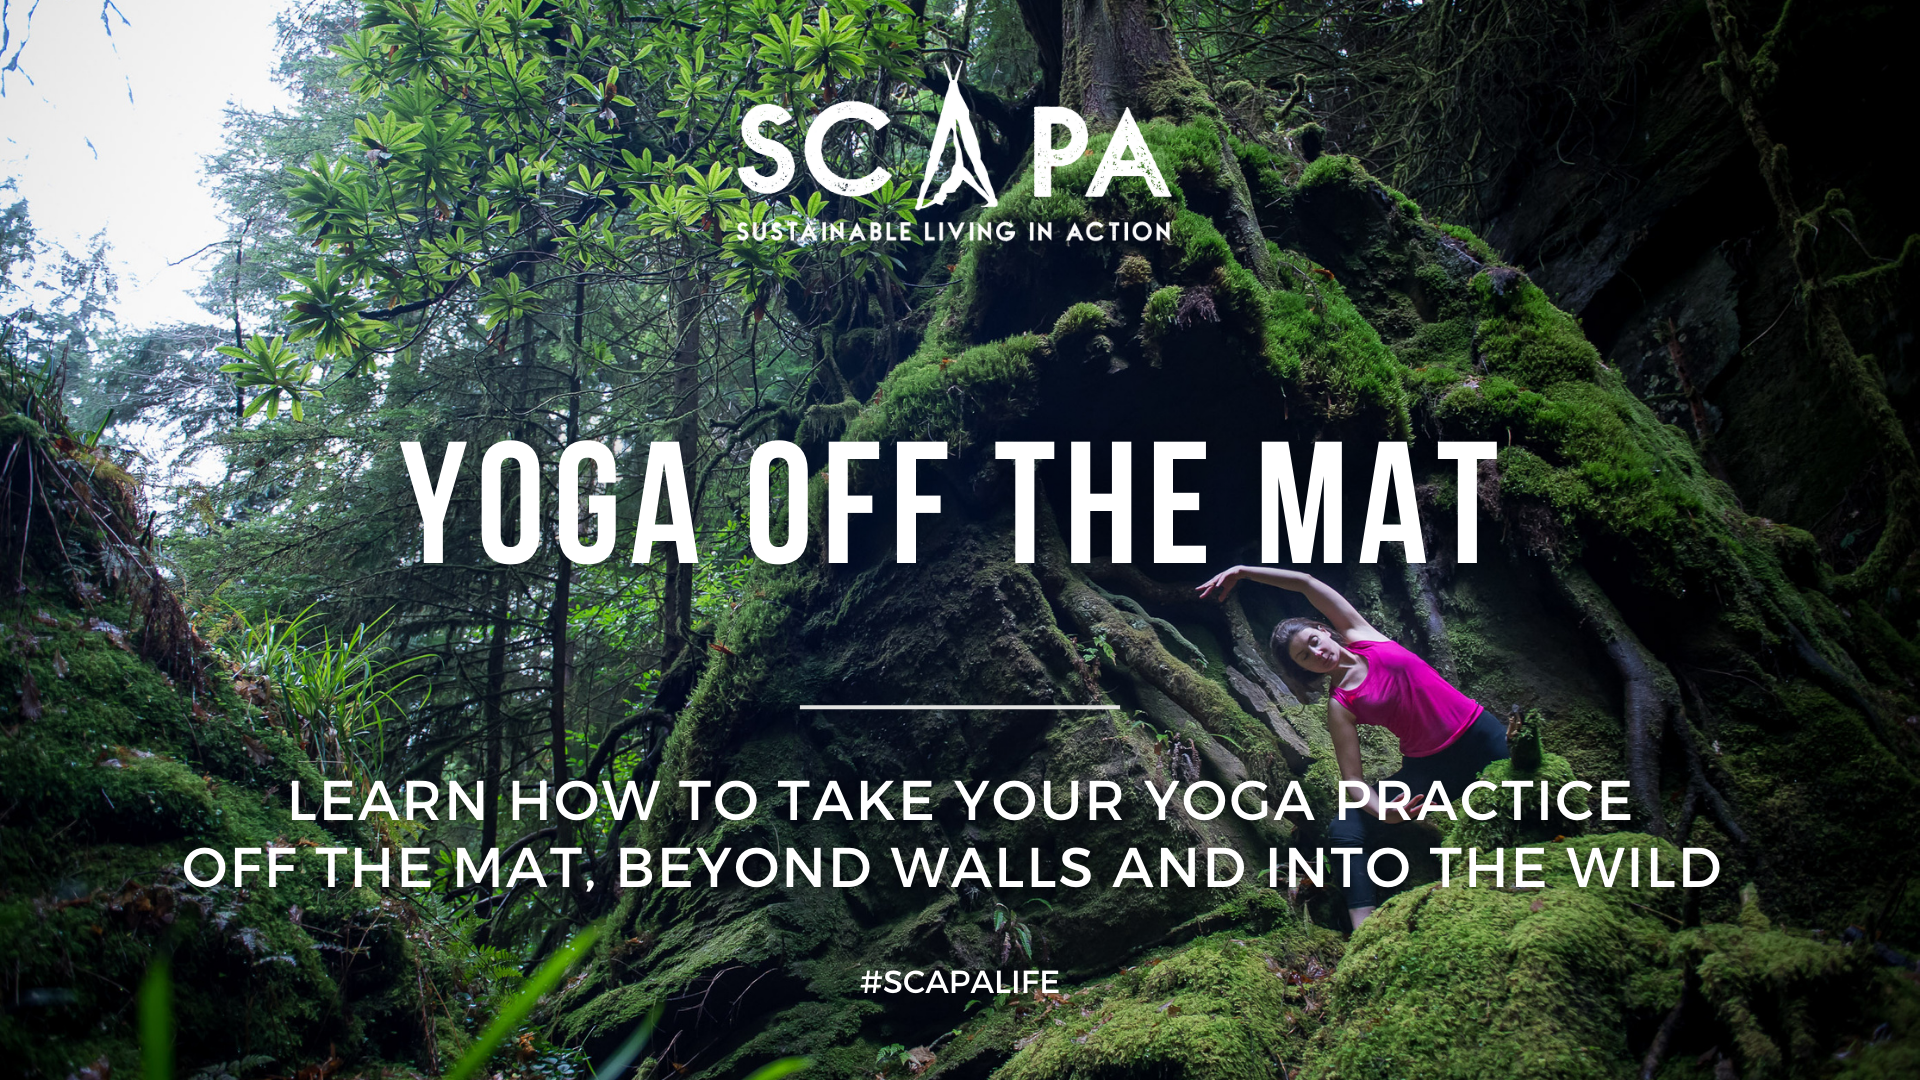 yoga-off-the-mat-scapa-life